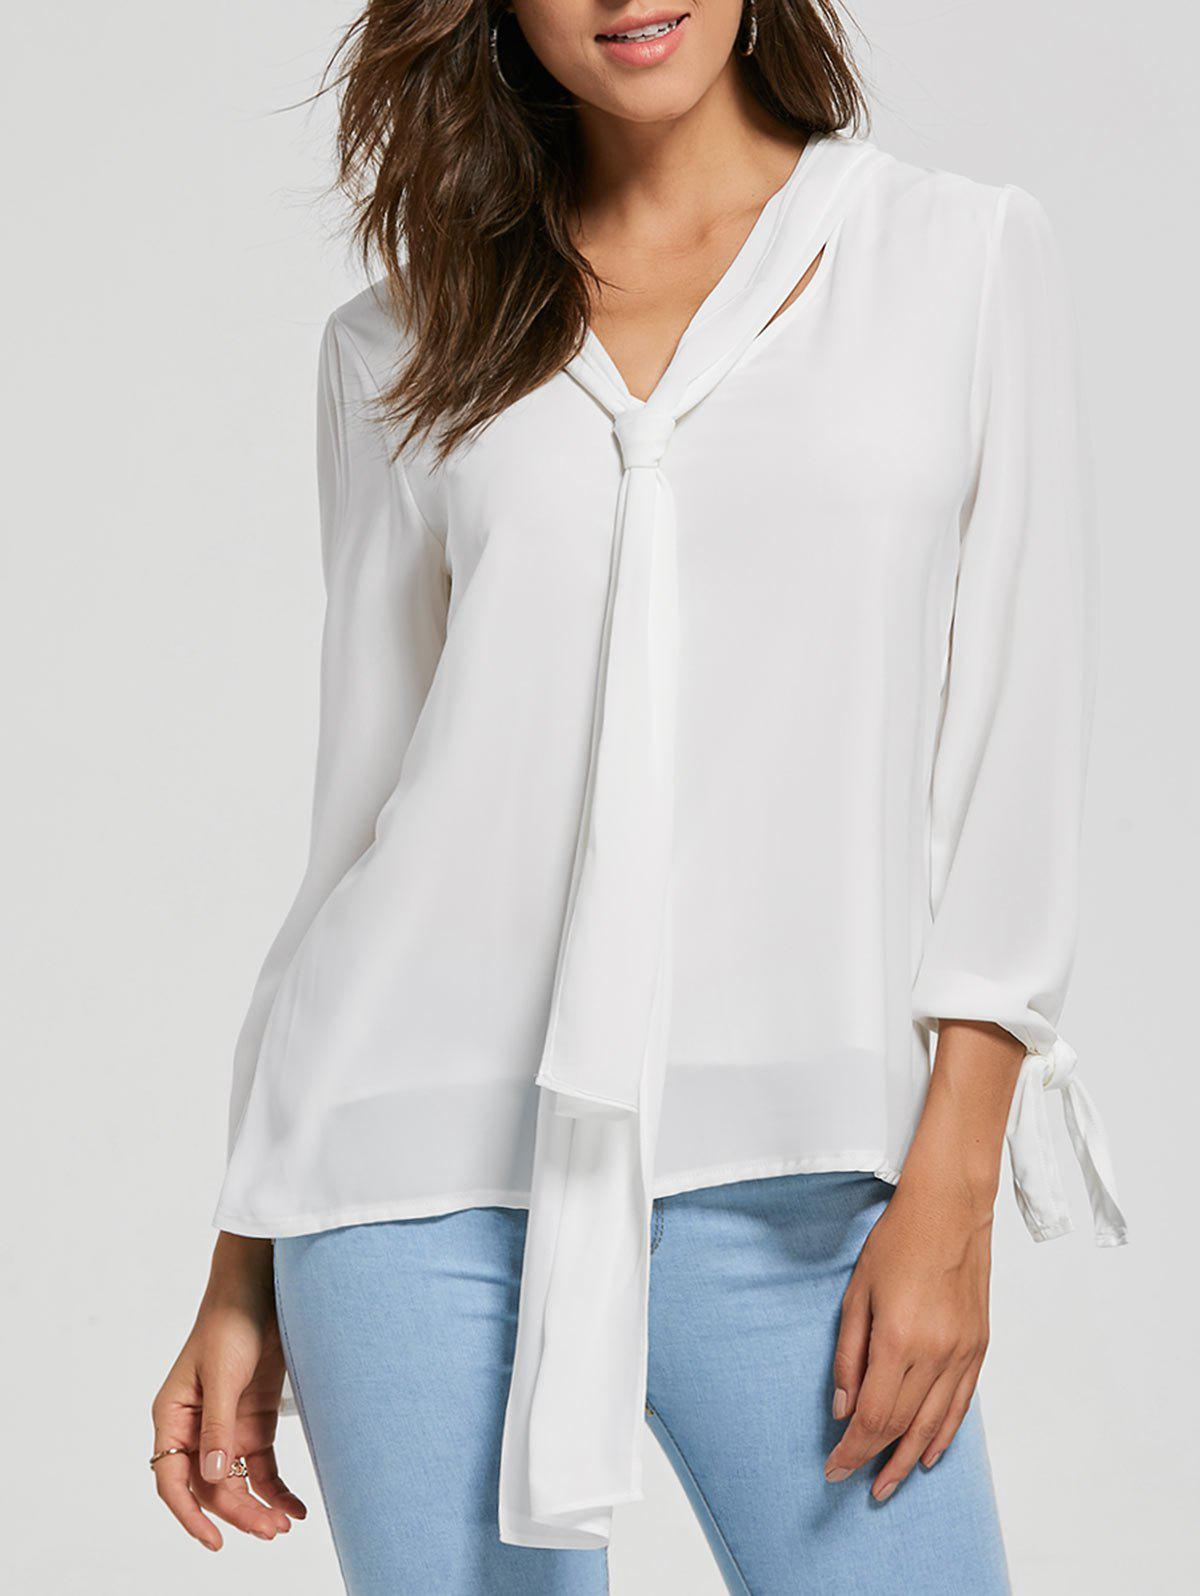 Cheap Chiffon Blouse with Optional Tie